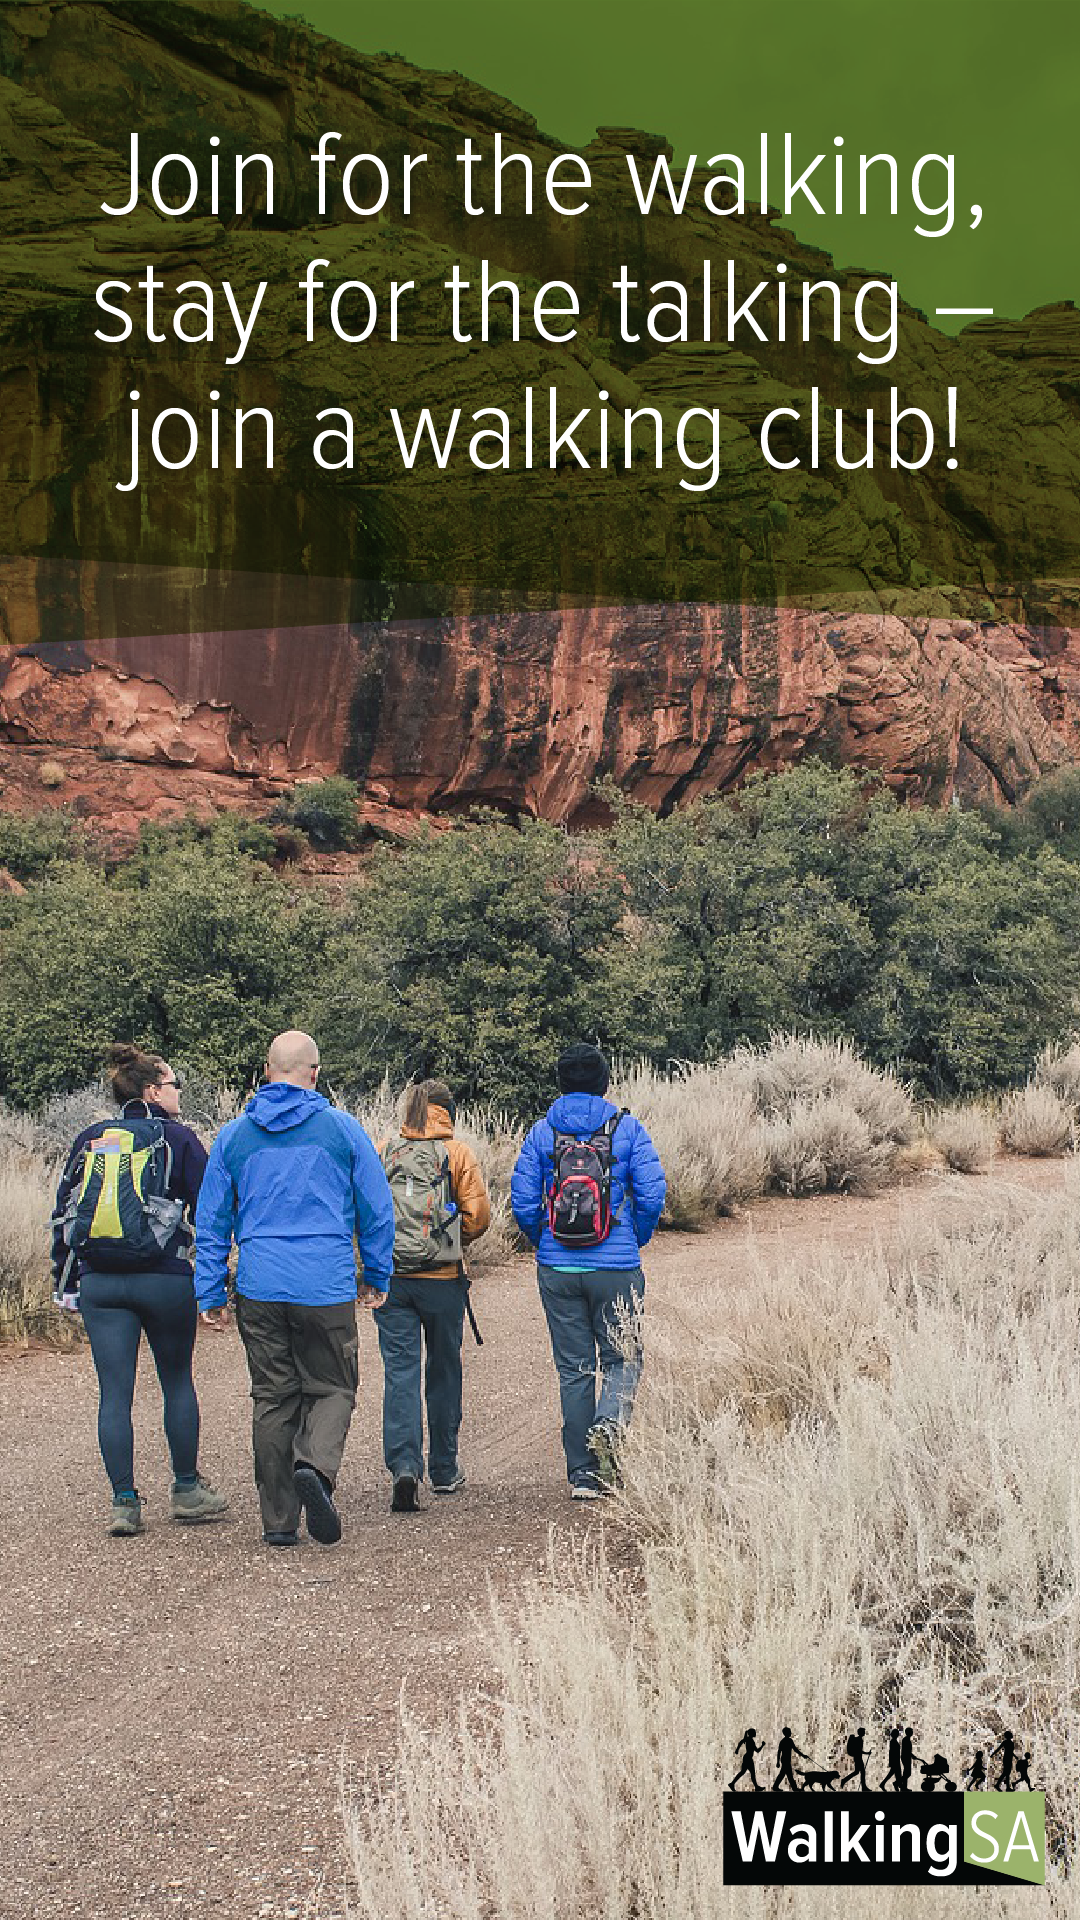 social media tile Square 1080px x 1900px: Join for the walking, stay for the talking – join a walking club!